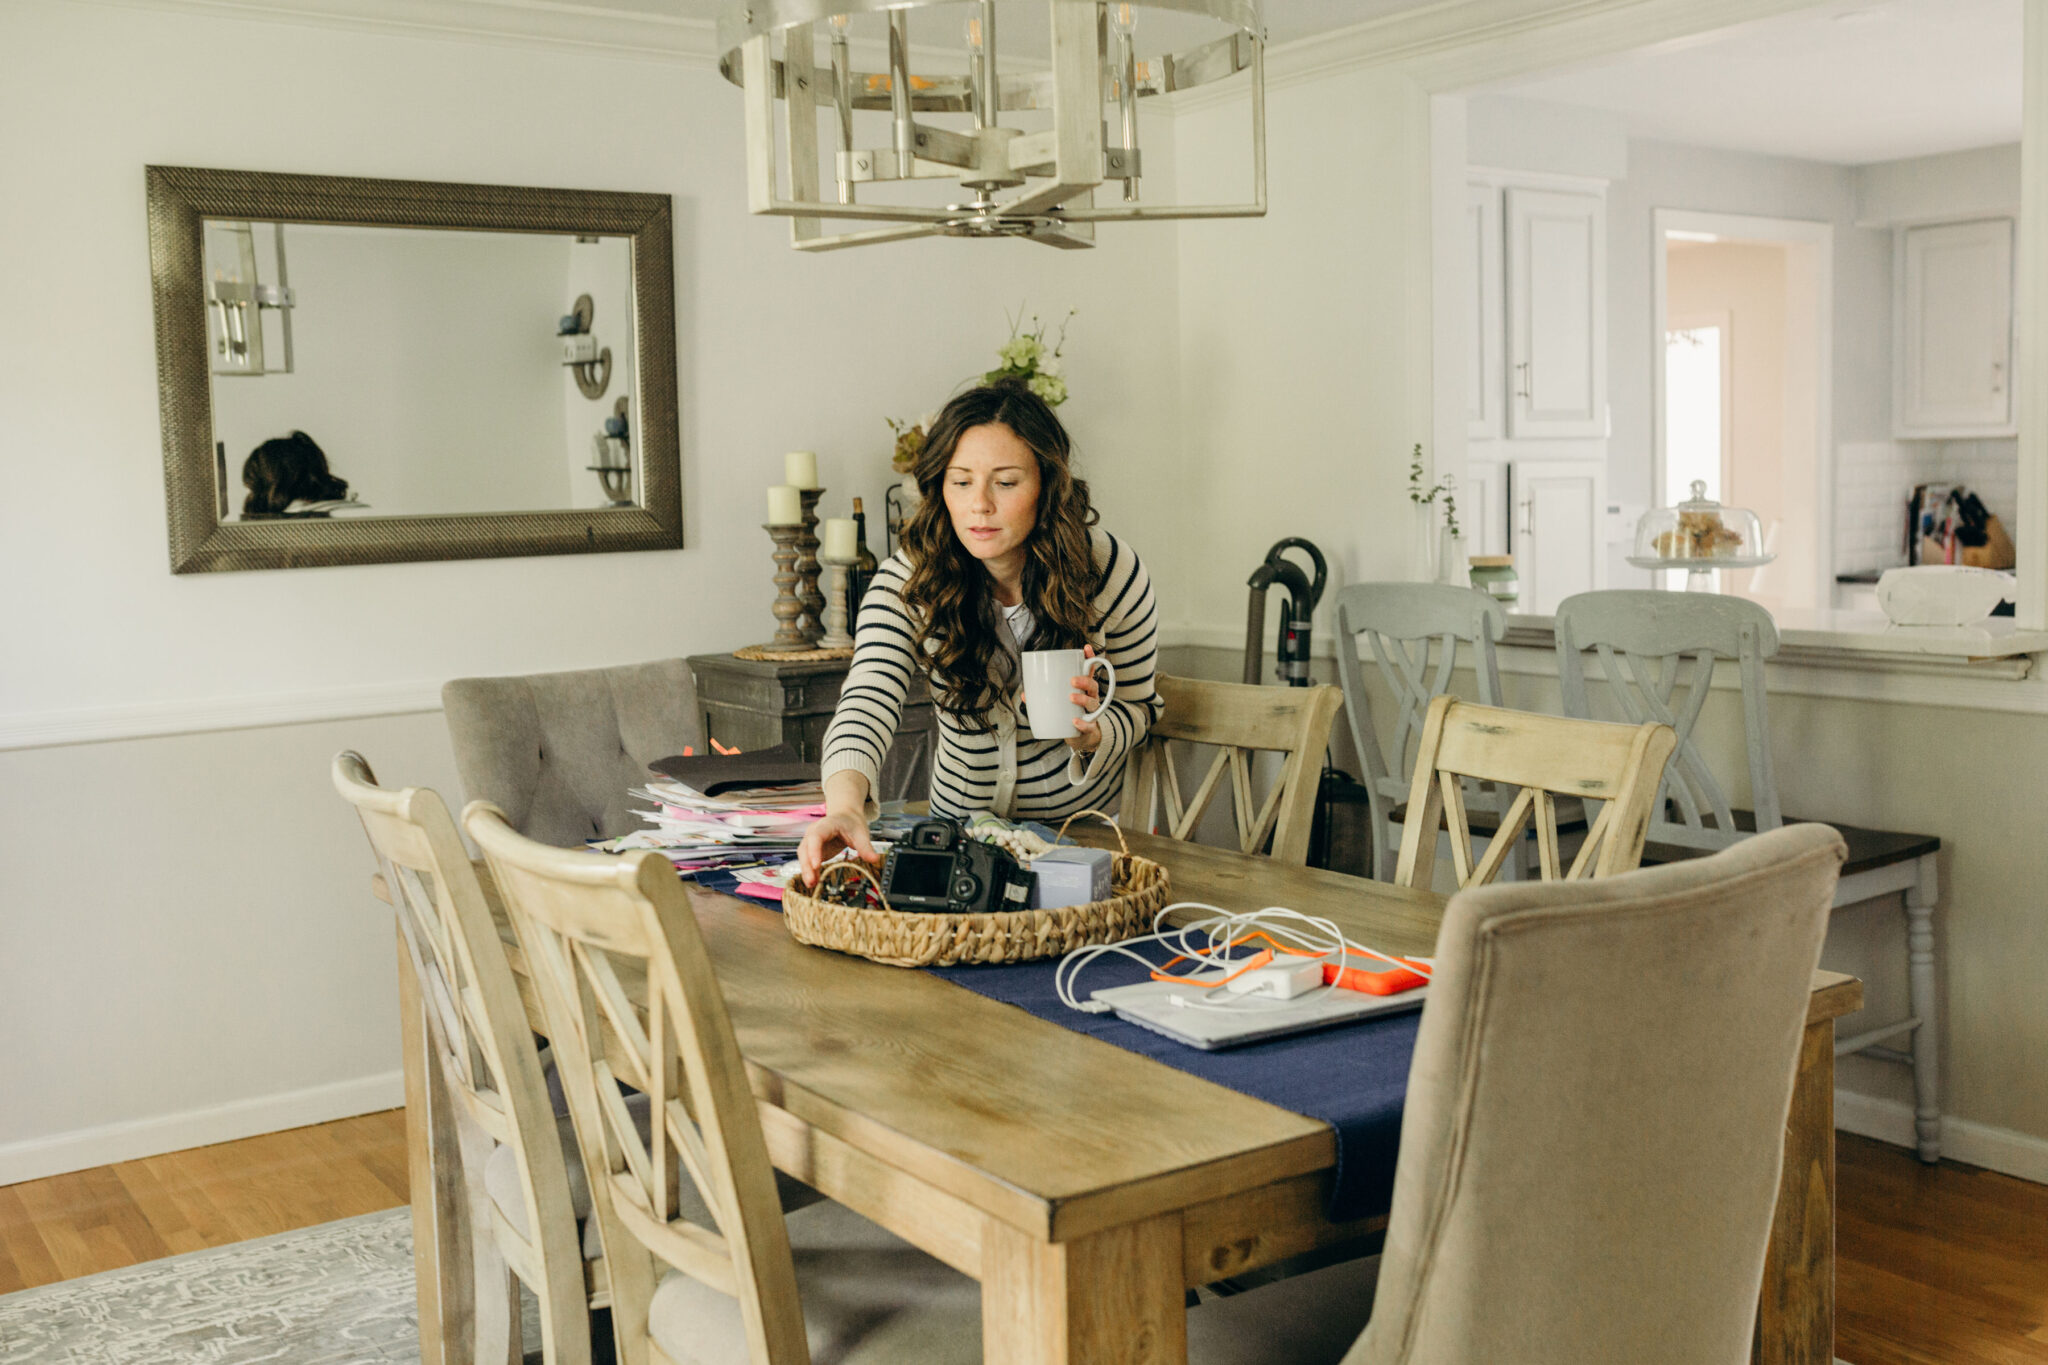 Mom holding cup of coffee arranging messy dining room table